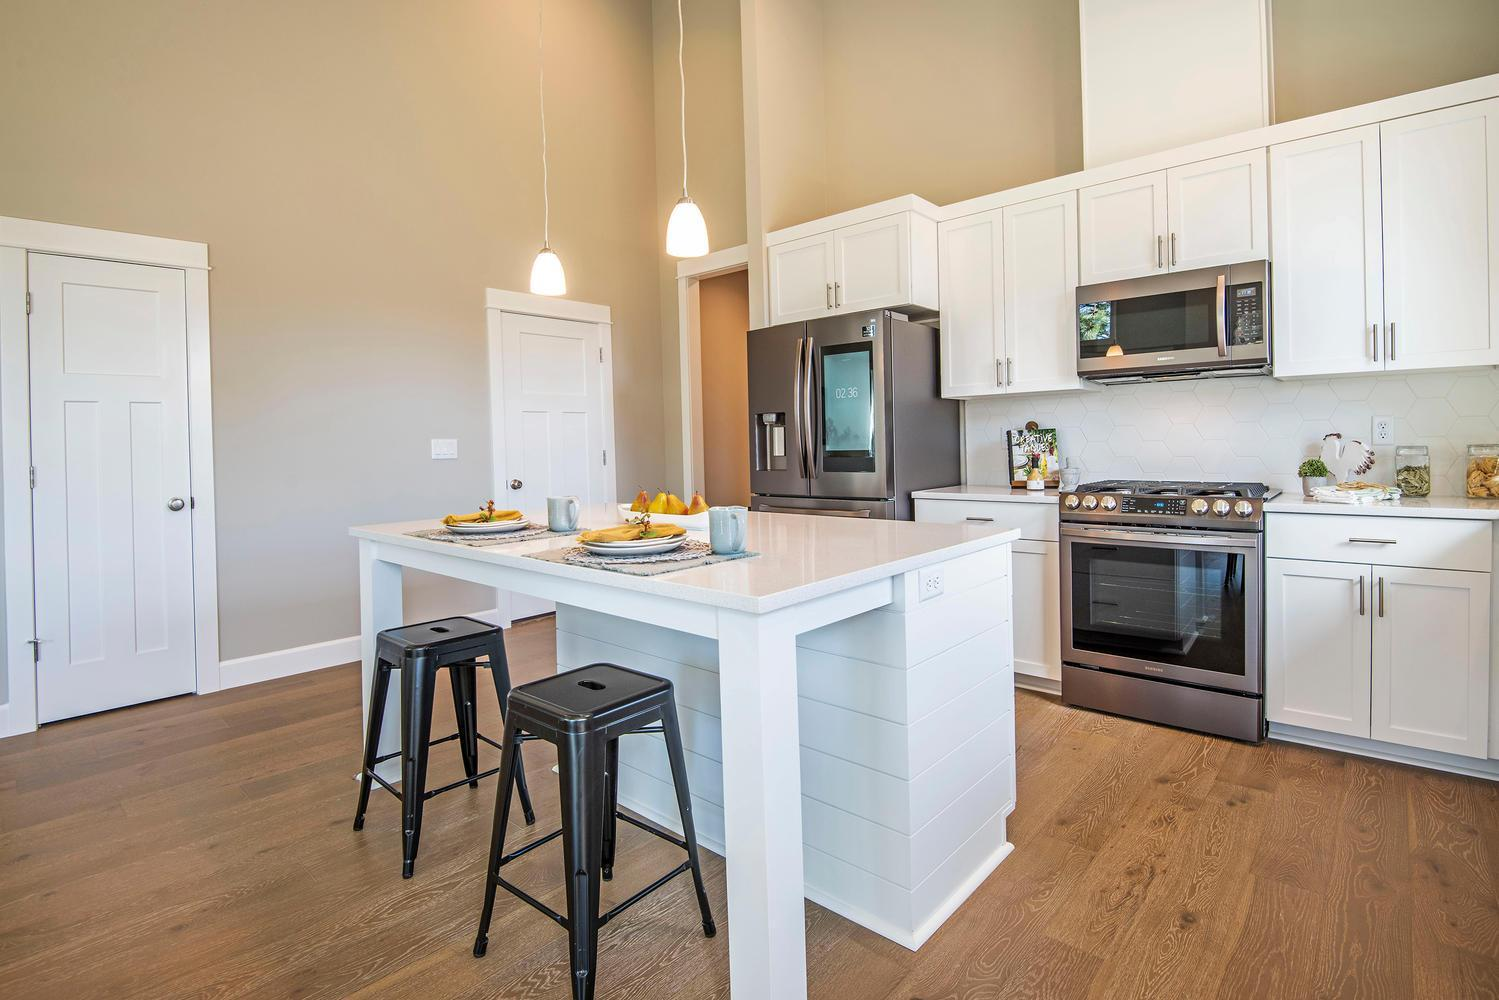 Kitchen featured in The Cedar By Woodhill Homes in Central Oregon, OR